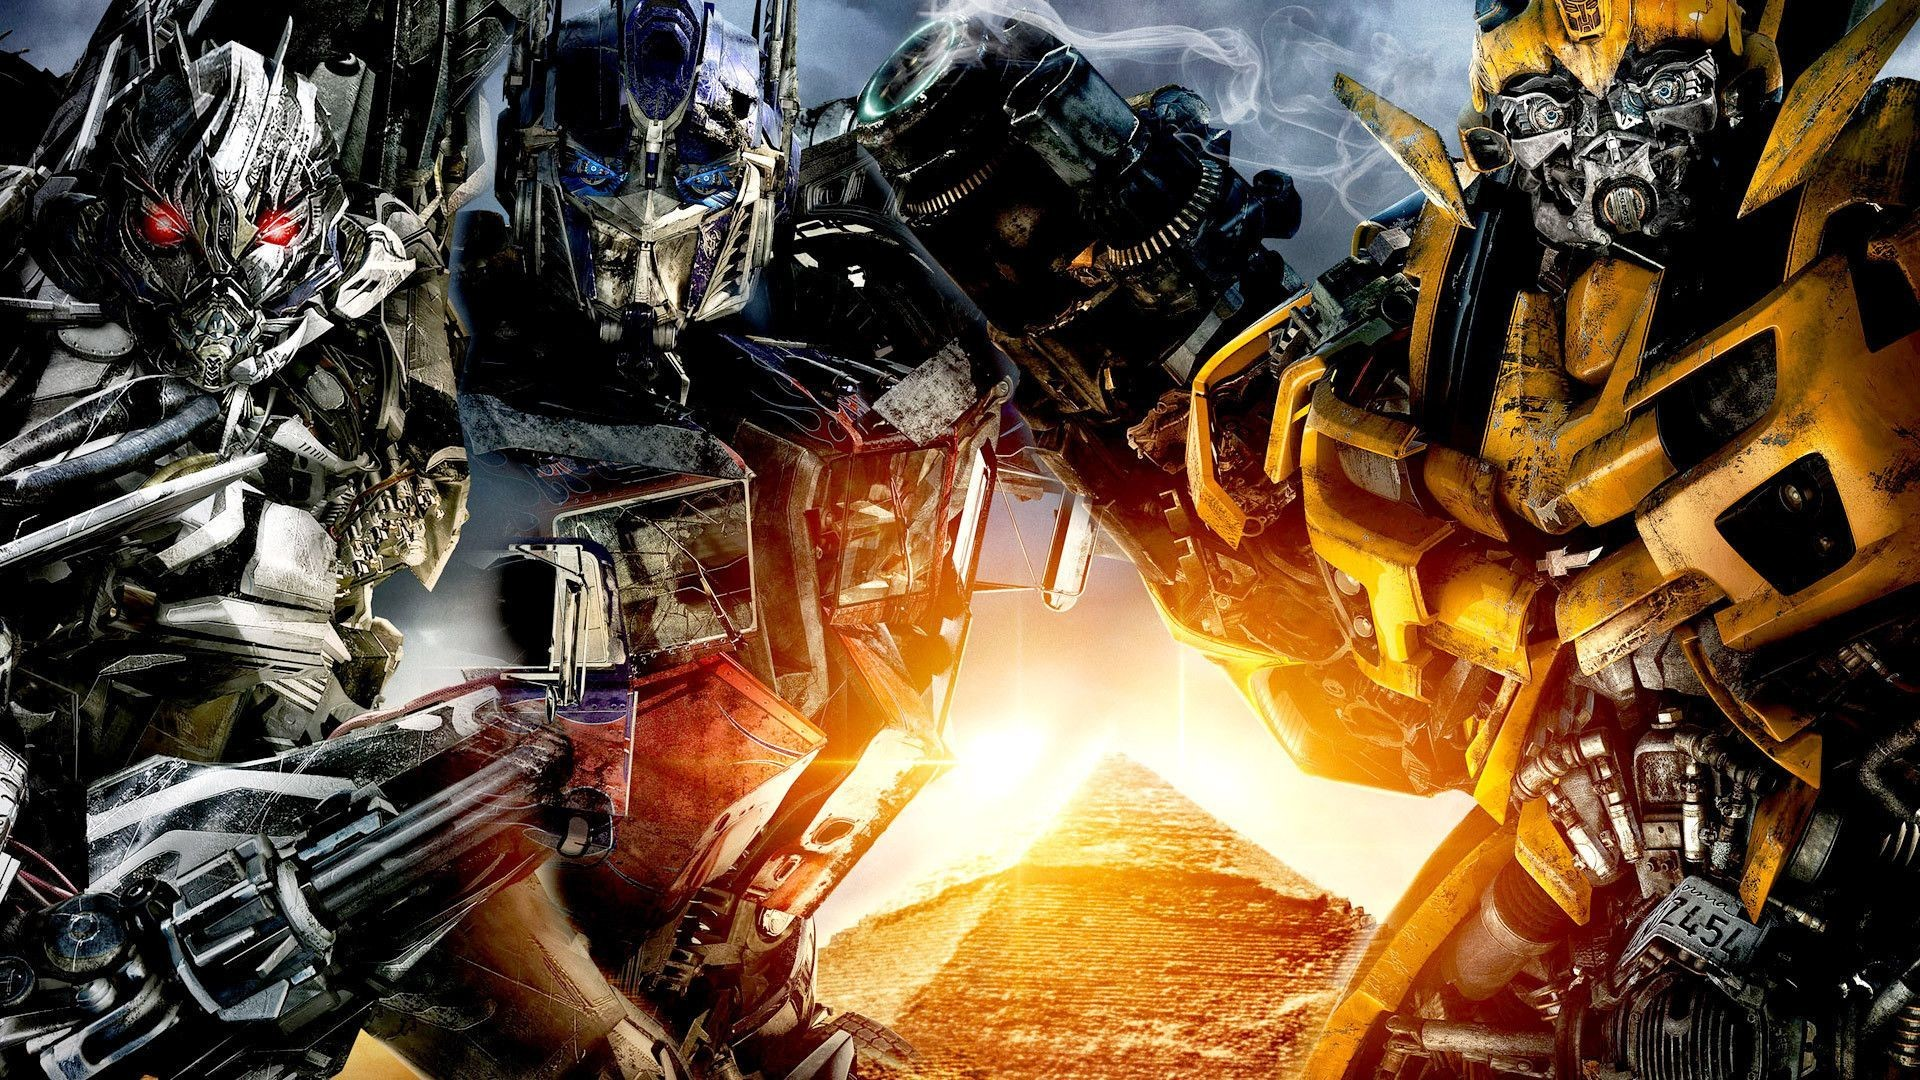 transformers 2 hd wallpapers download